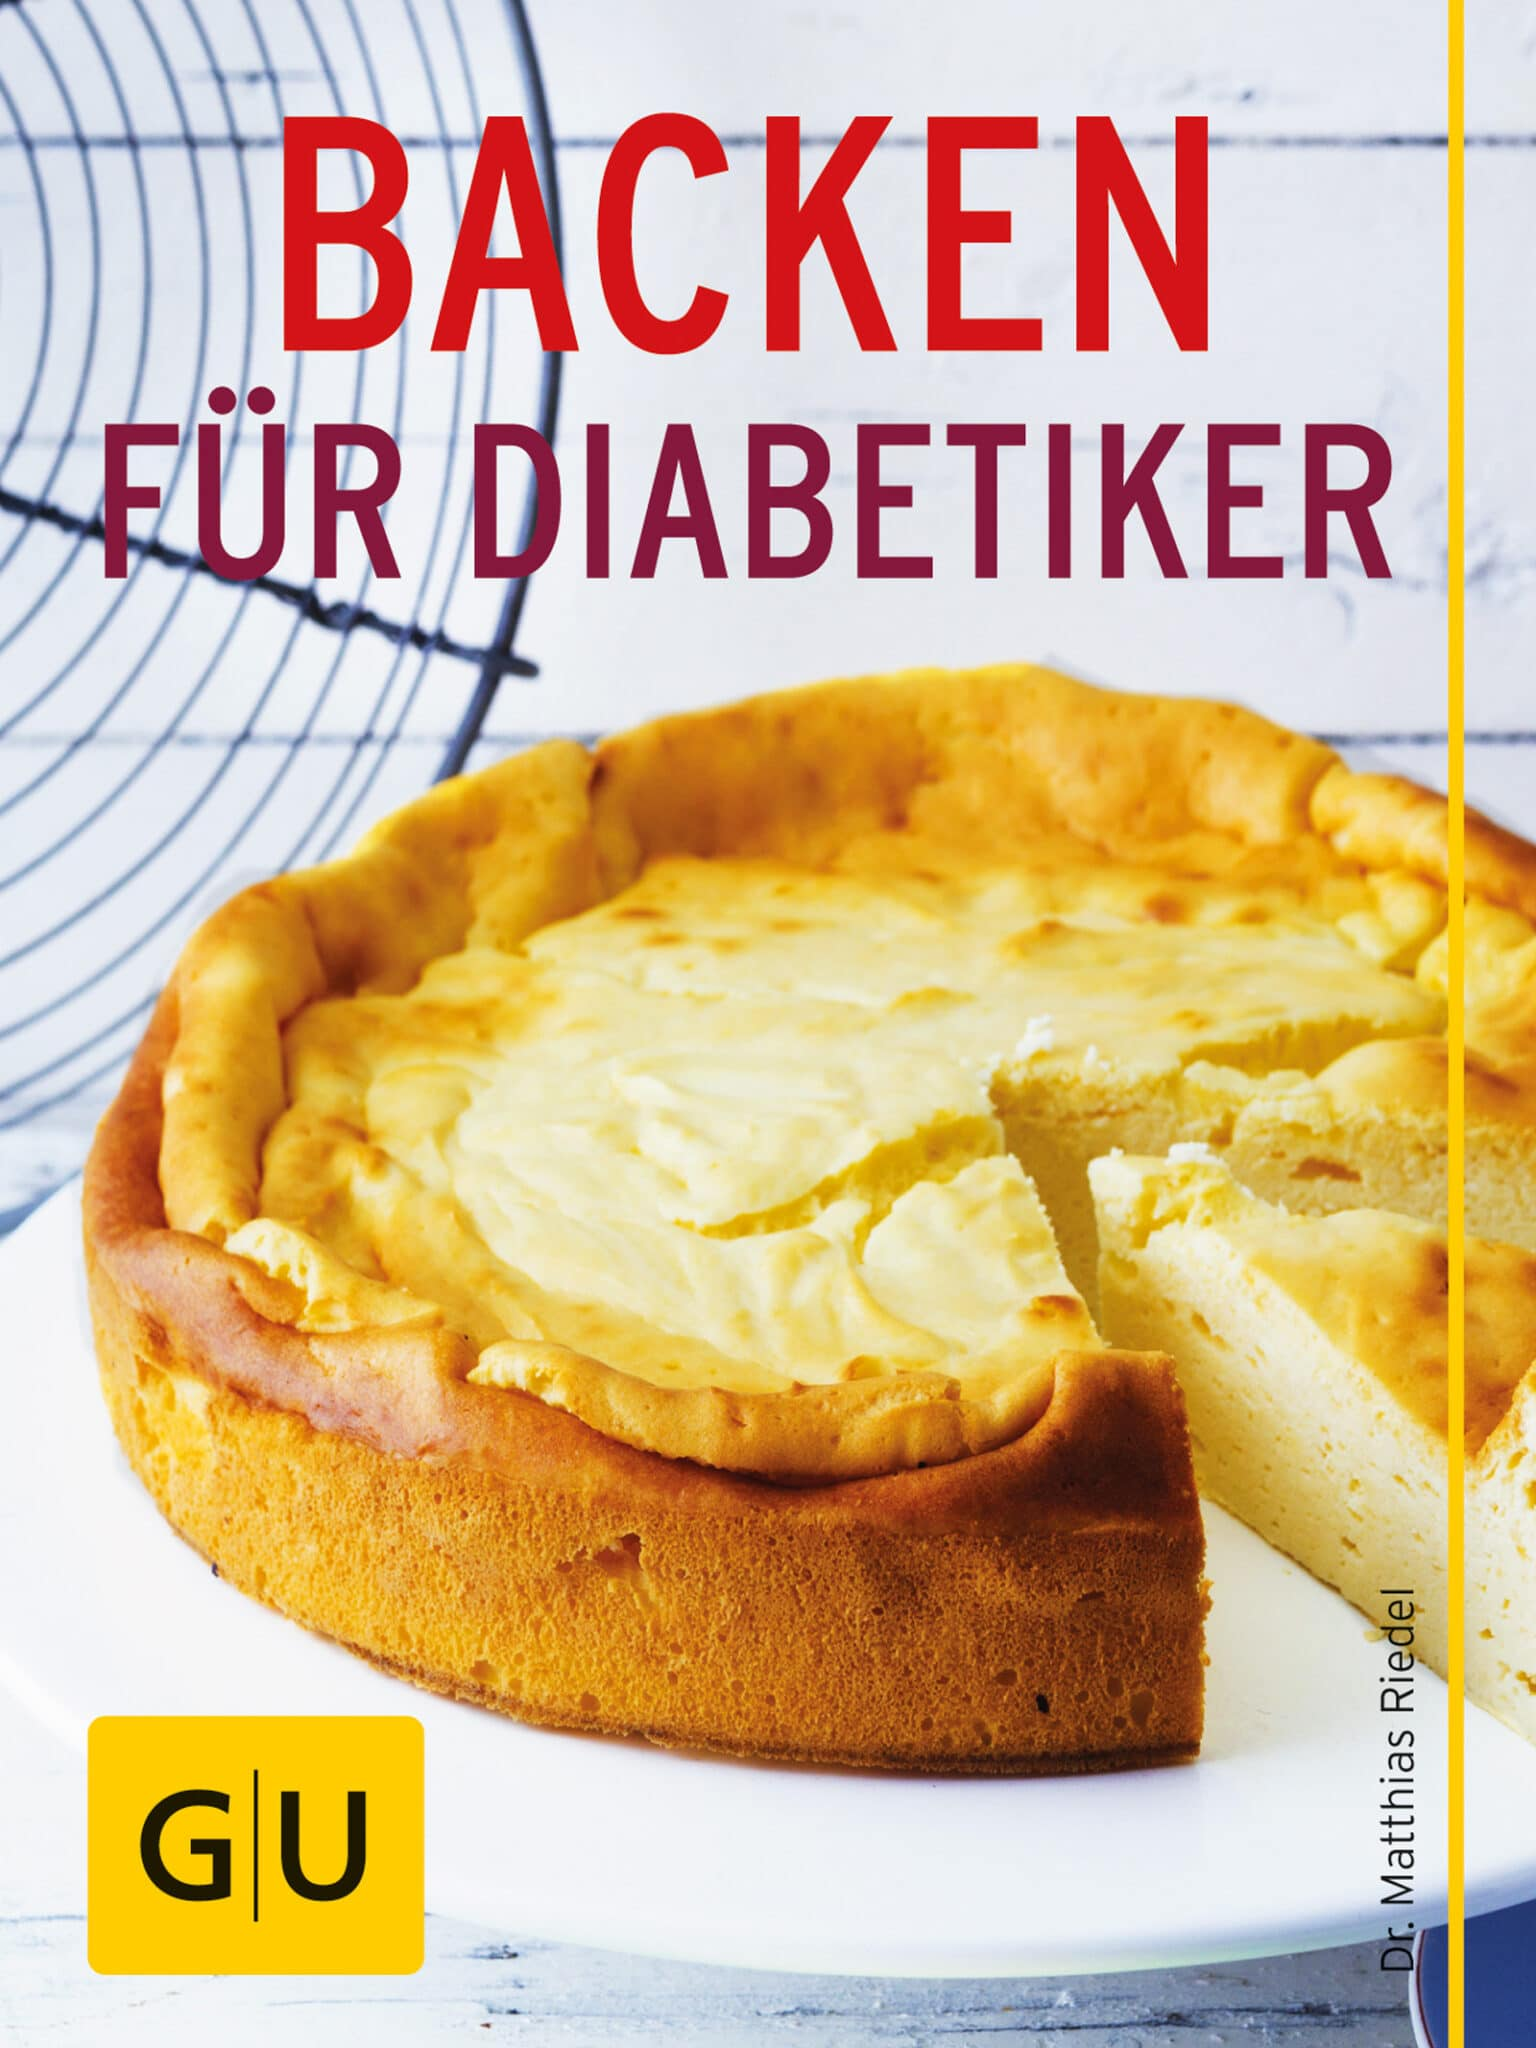 Backen für Diabetiker - E-Book (ePub)